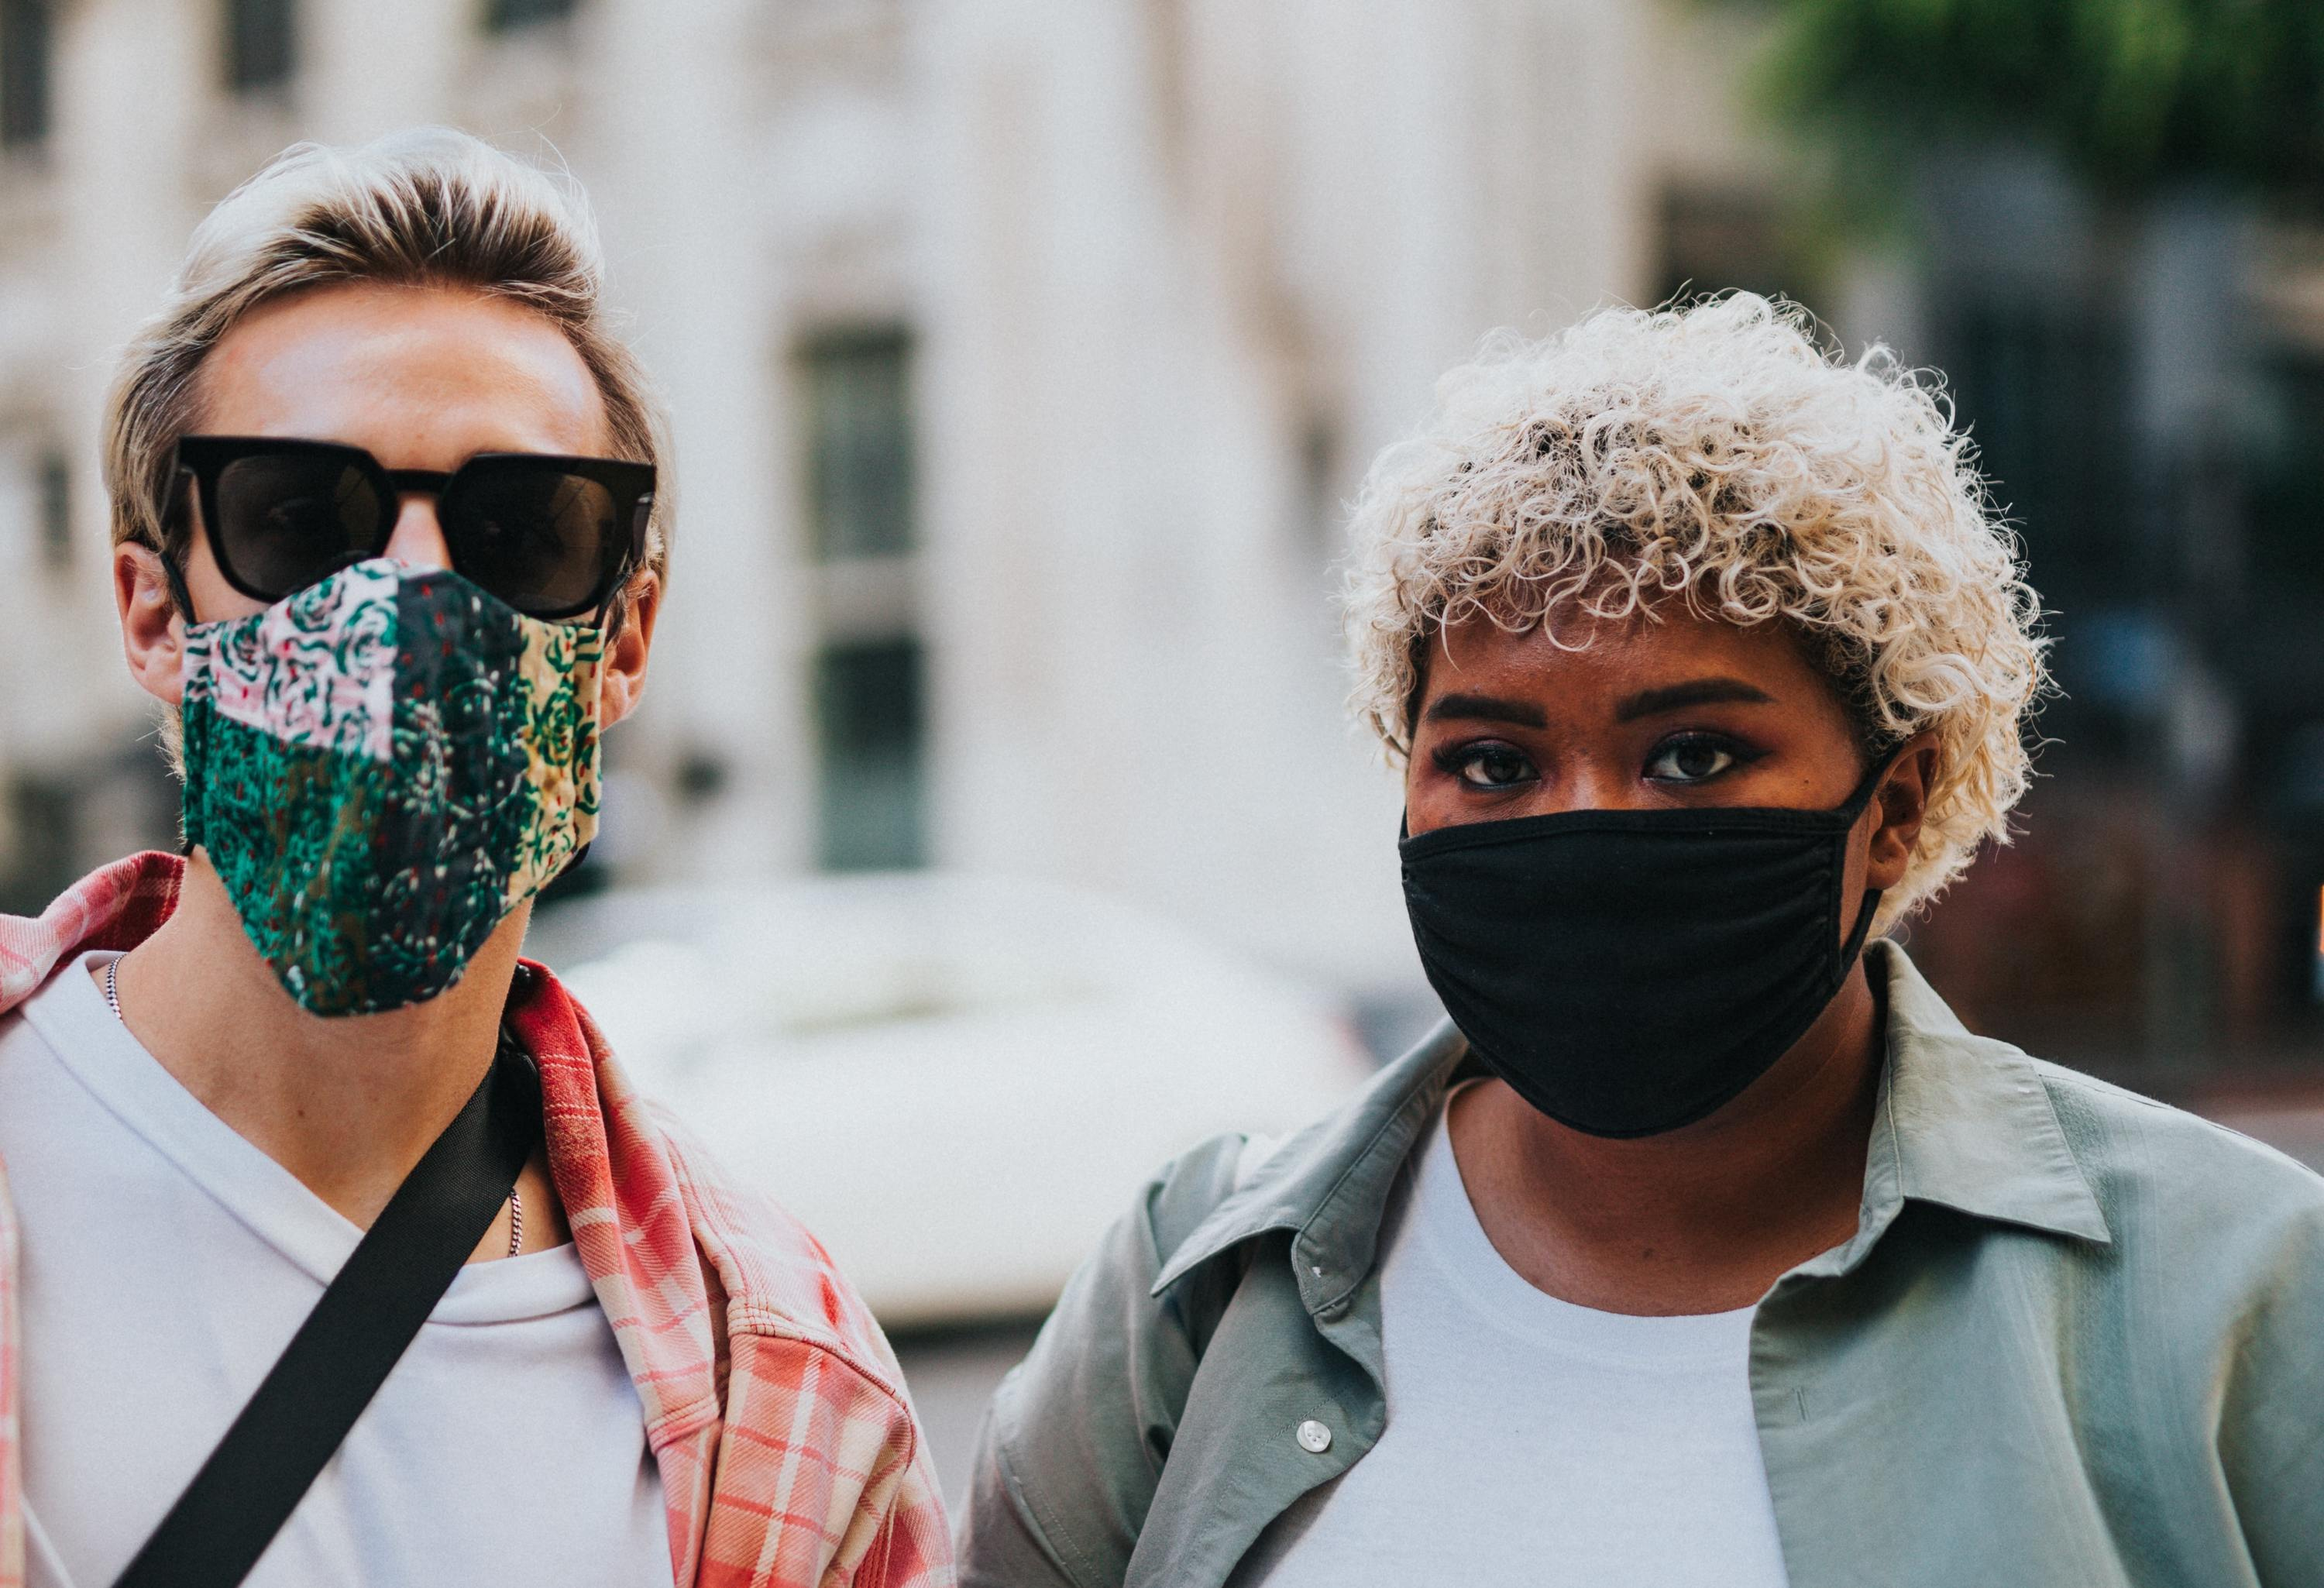 Australia's deputy medical officer recommends wearing a face mask in public